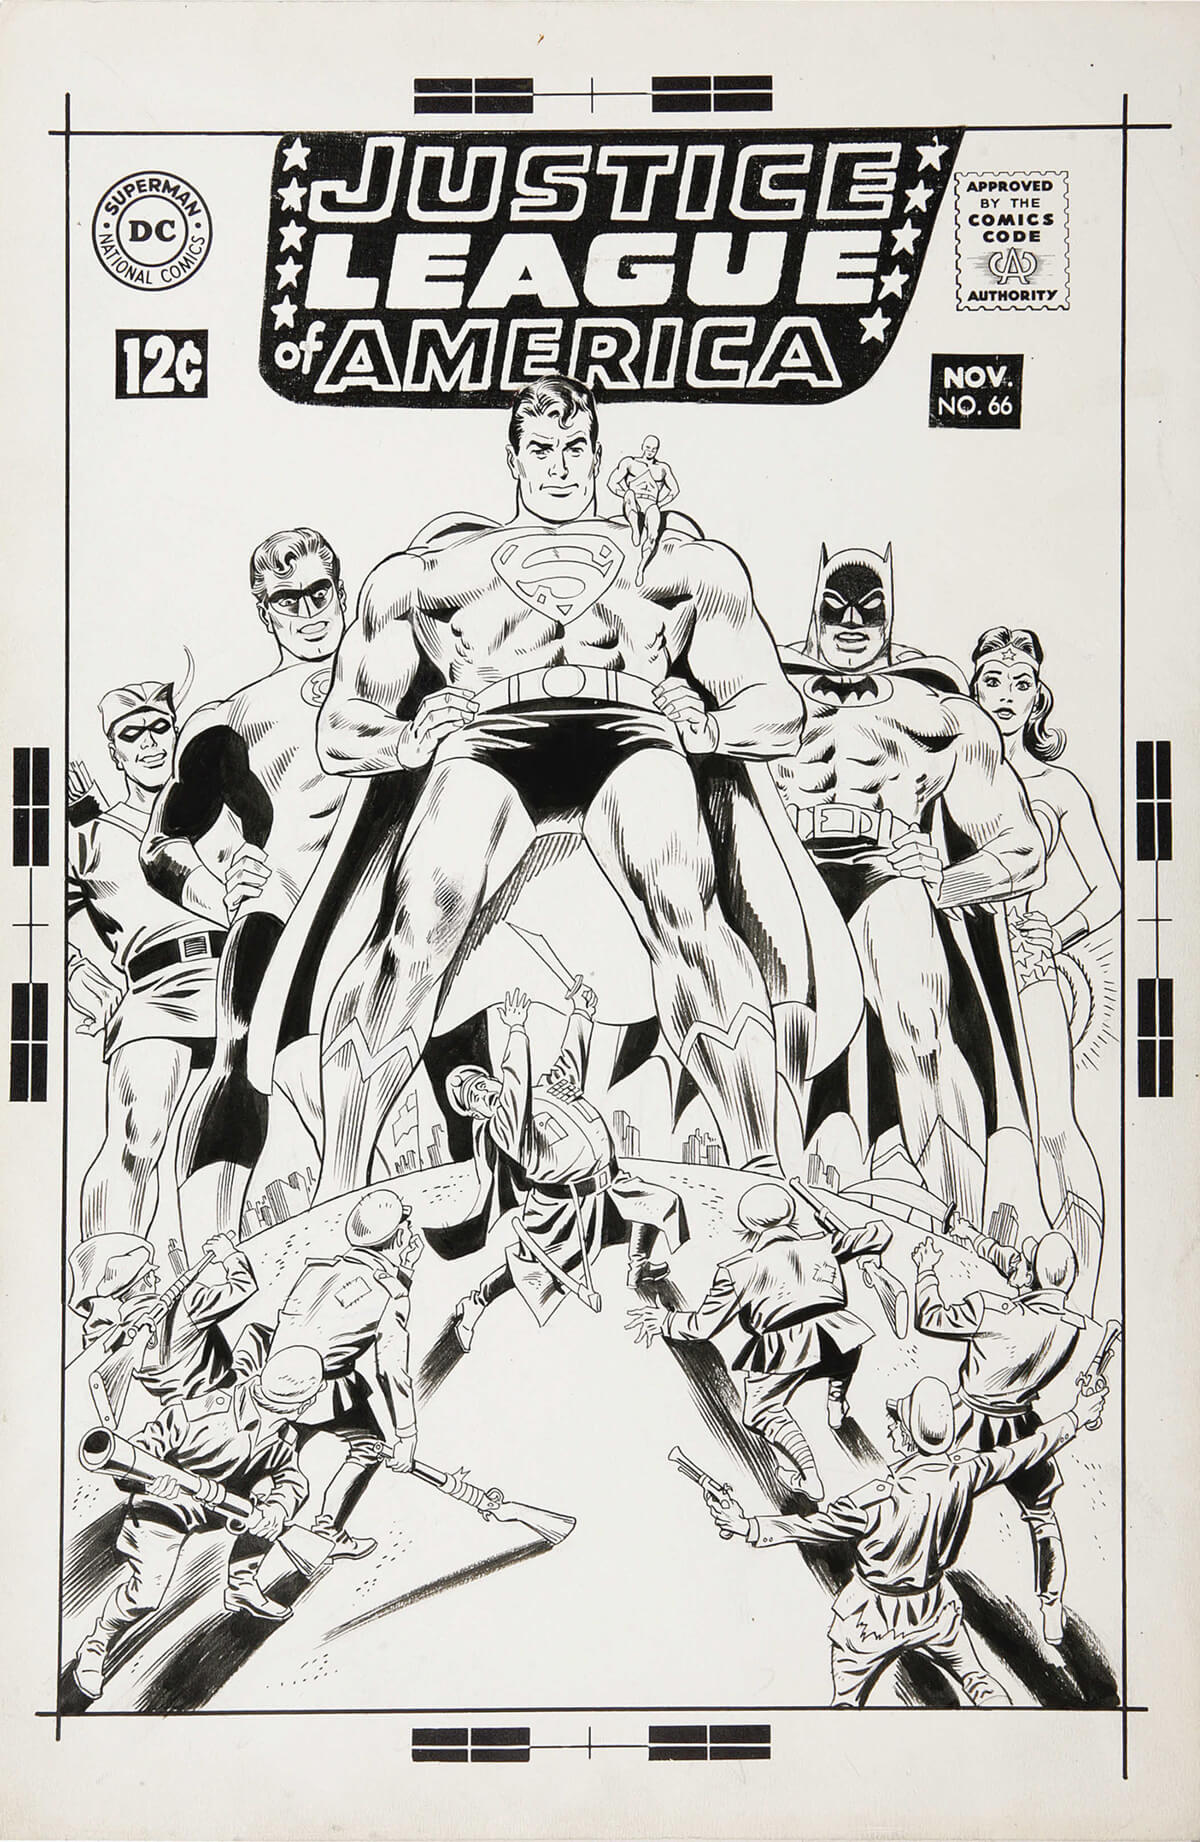 Justice League of America 66 cover by Dick Dillin and Joe Giella